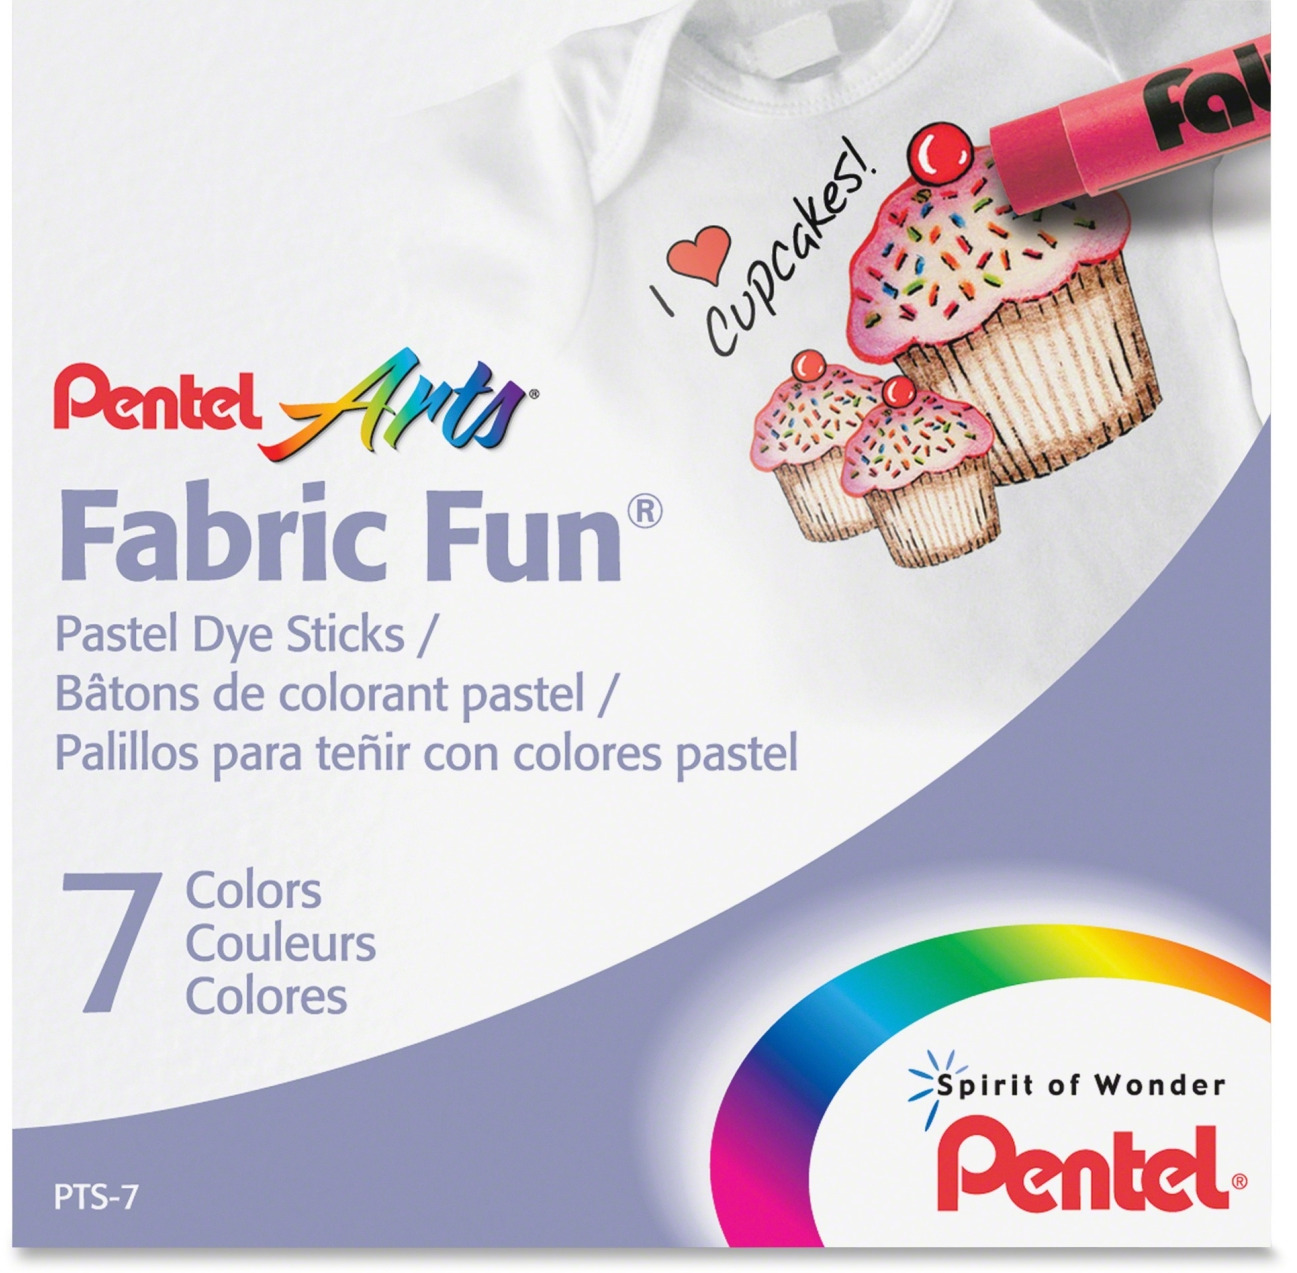 Pentel-Arts-PTS7-Fabric-Fun-Pastel-Dye-Sticks_edited